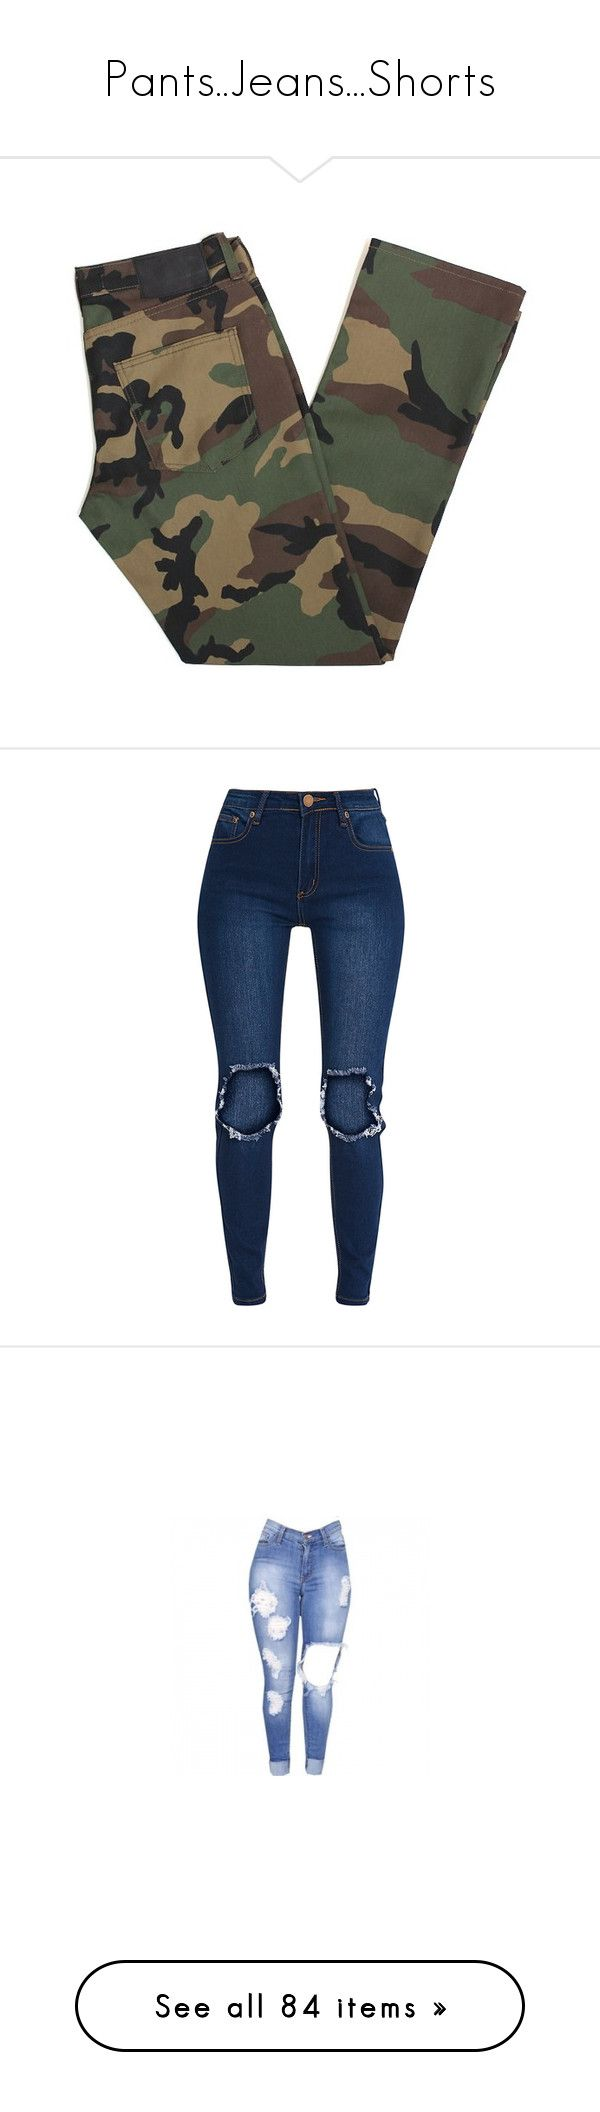 """""""Pants..Jeans...Shorts"""" by zyriajones ❤ liked on Polyvore featuring jeans, pants, bottoms, camouflage jeans, camo print jeans, camoflage jeans, brown jeans, camo jeans, slim fit ripped jeans and slim blue jeans"""